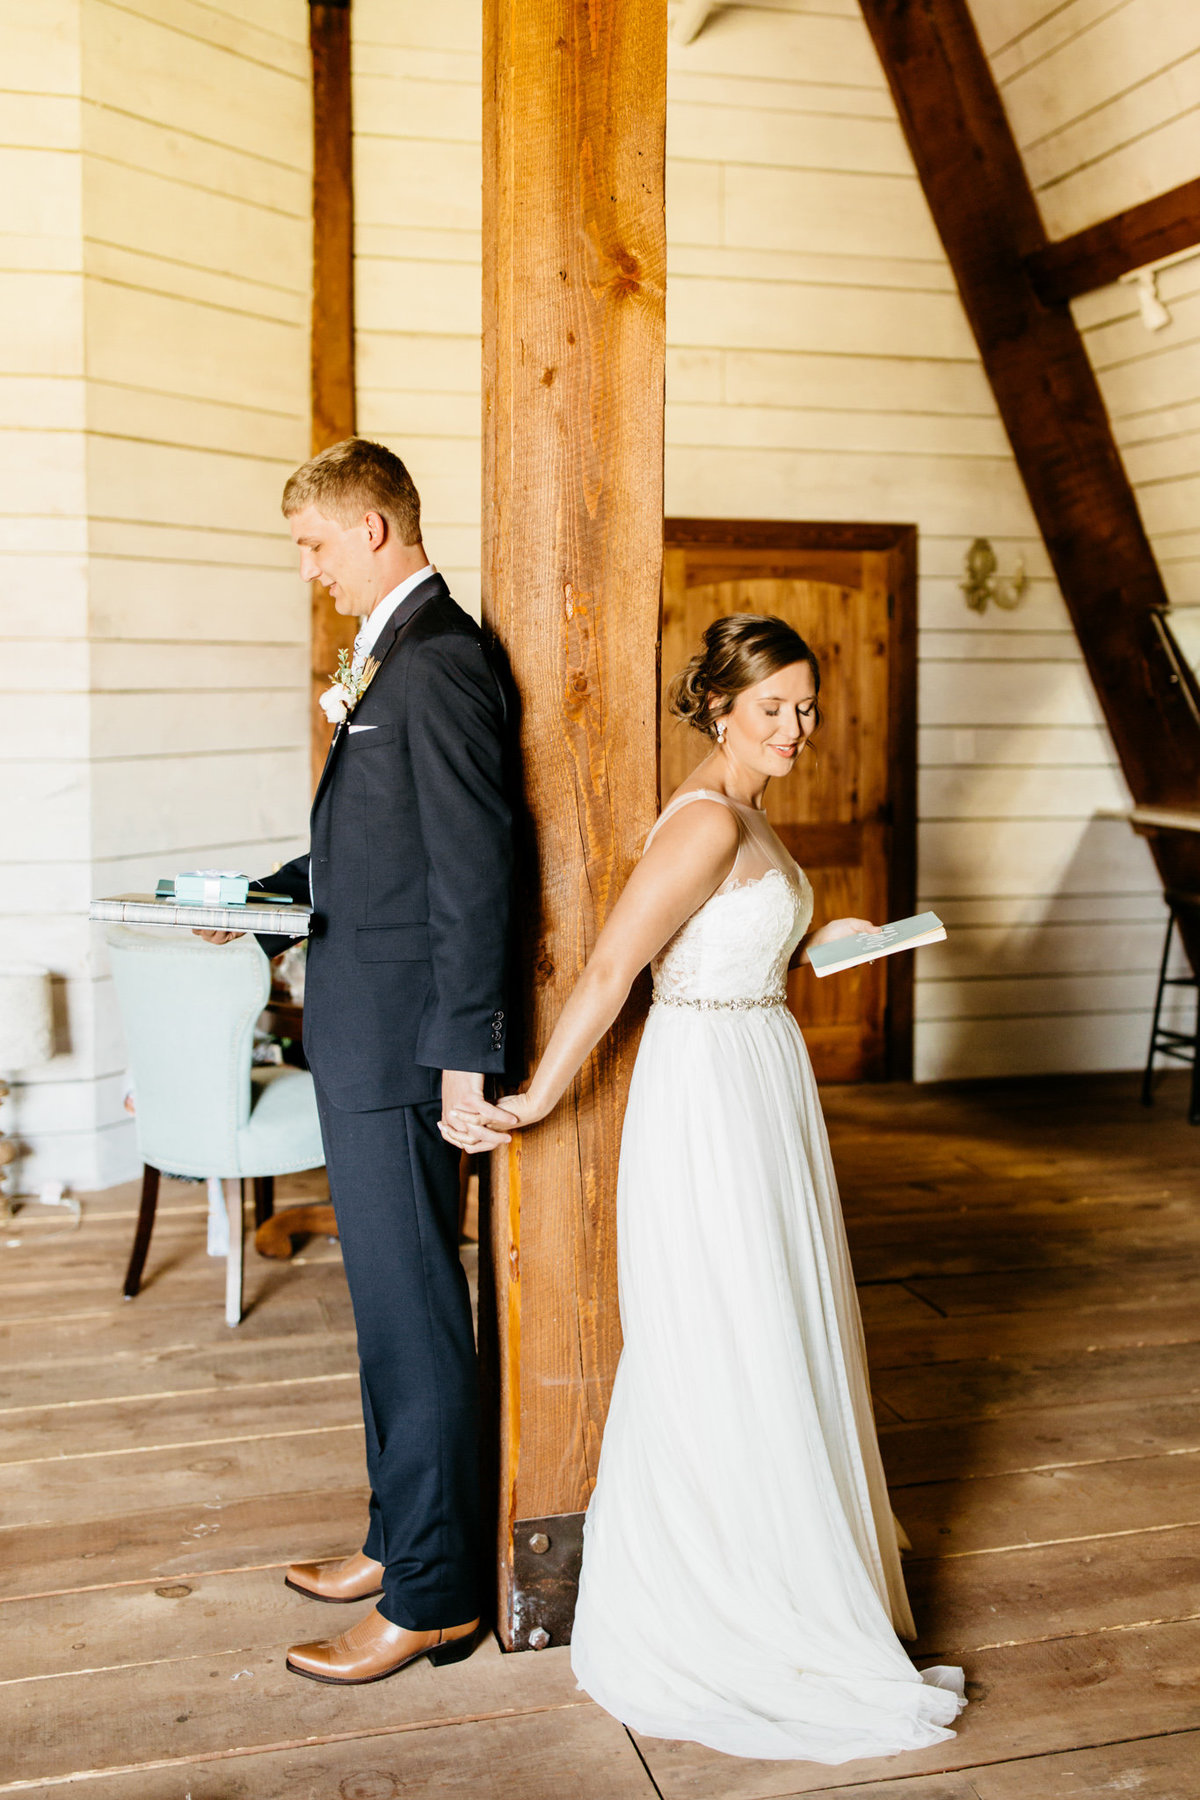 Alexa-Vossler-Photo_Dallas-Wedding-Photographer_North-Texas-Wedding-Photographer_Stephanie-Chase-Wedding-at-Morgan-Creek-Barn-Aubrey-Texas_57